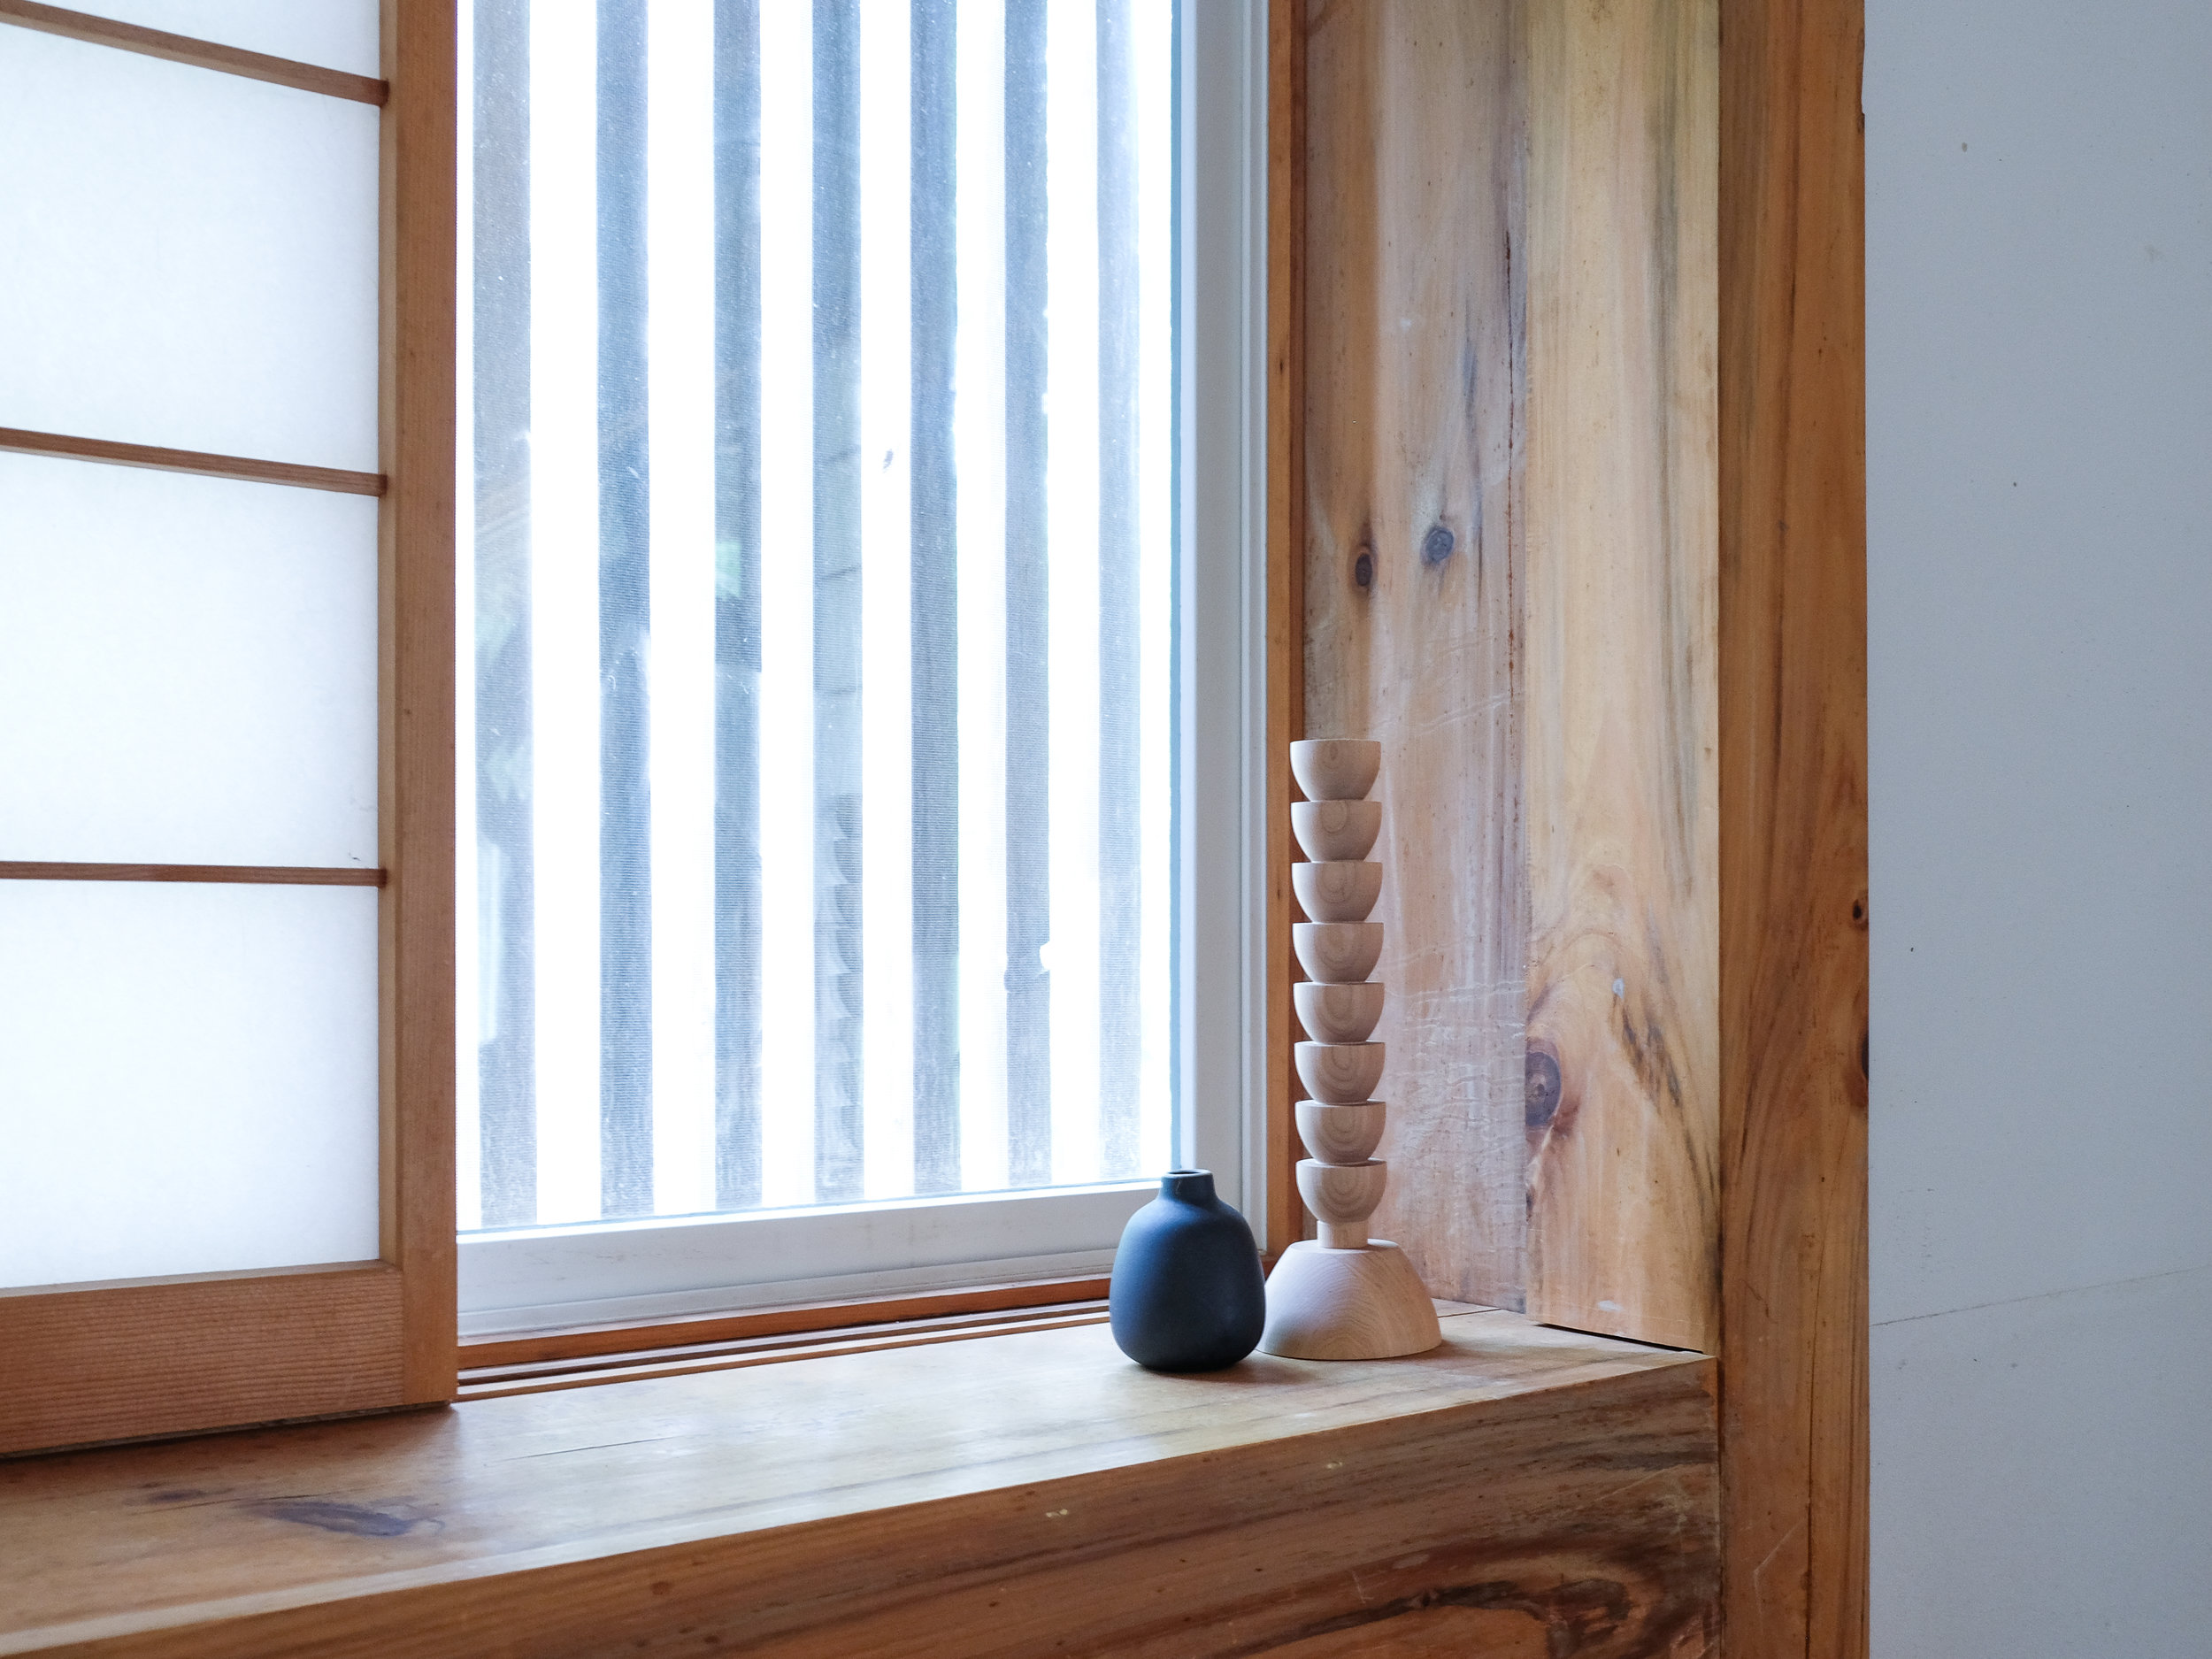 Last spring, Jeff and I stayed at a  Japanese-inspired cabin in the Catskills  that was filled with wood accents. You can see a similar taper holder in the product round-up below!